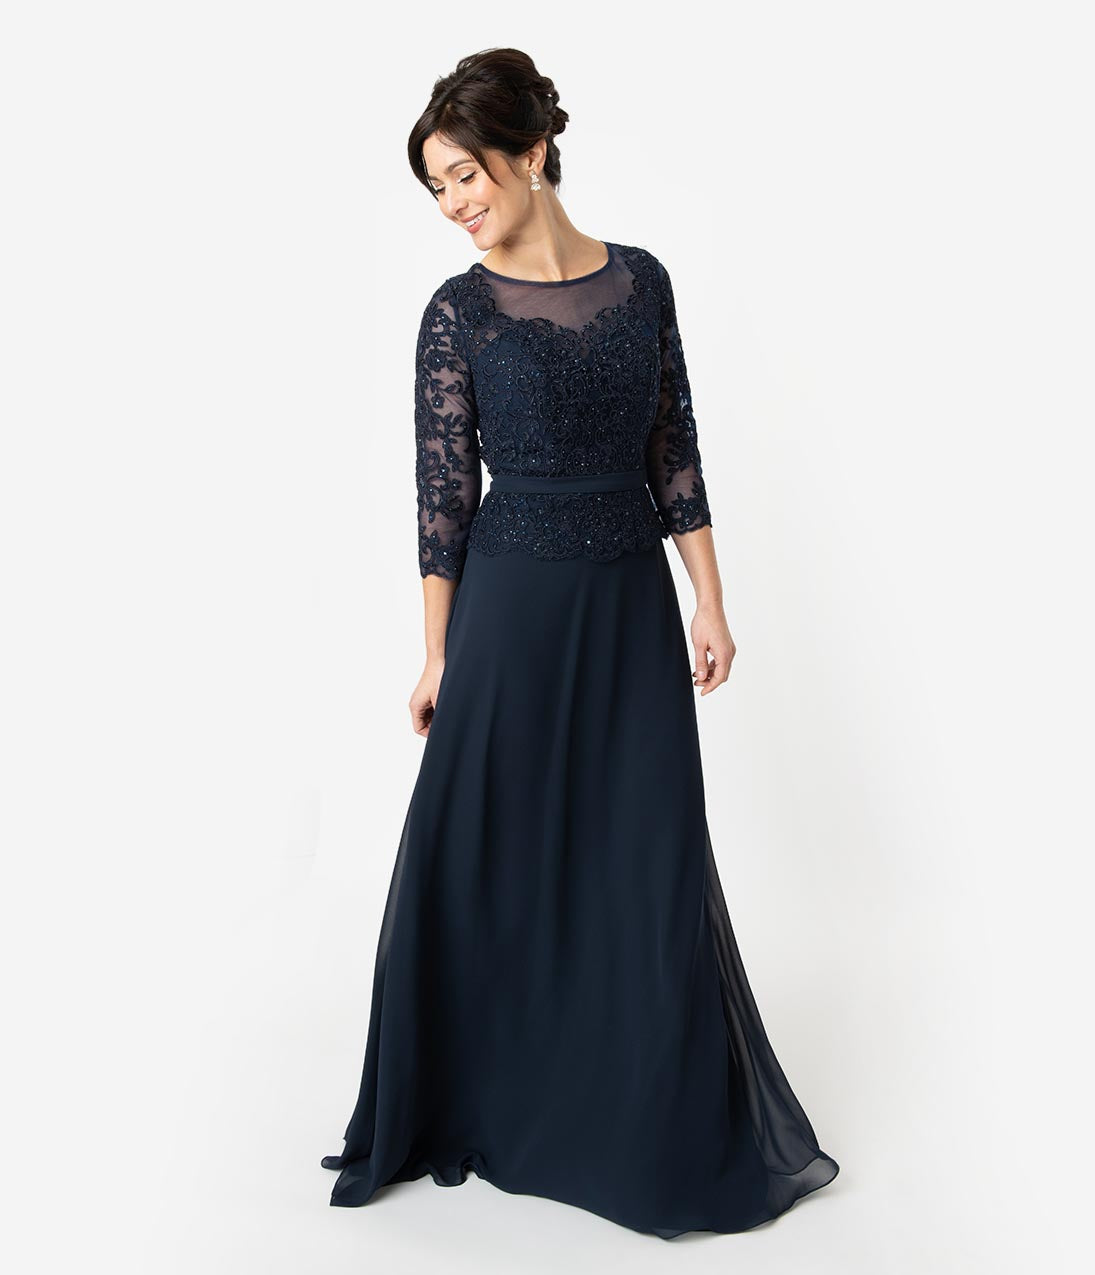 1940s Evening, Prom, Party, Formal, Ball Gowns Navy Blue Embellished Chiffon Sleeved Peplum Modest Long Dress $172.00 AT vintagedancer.com